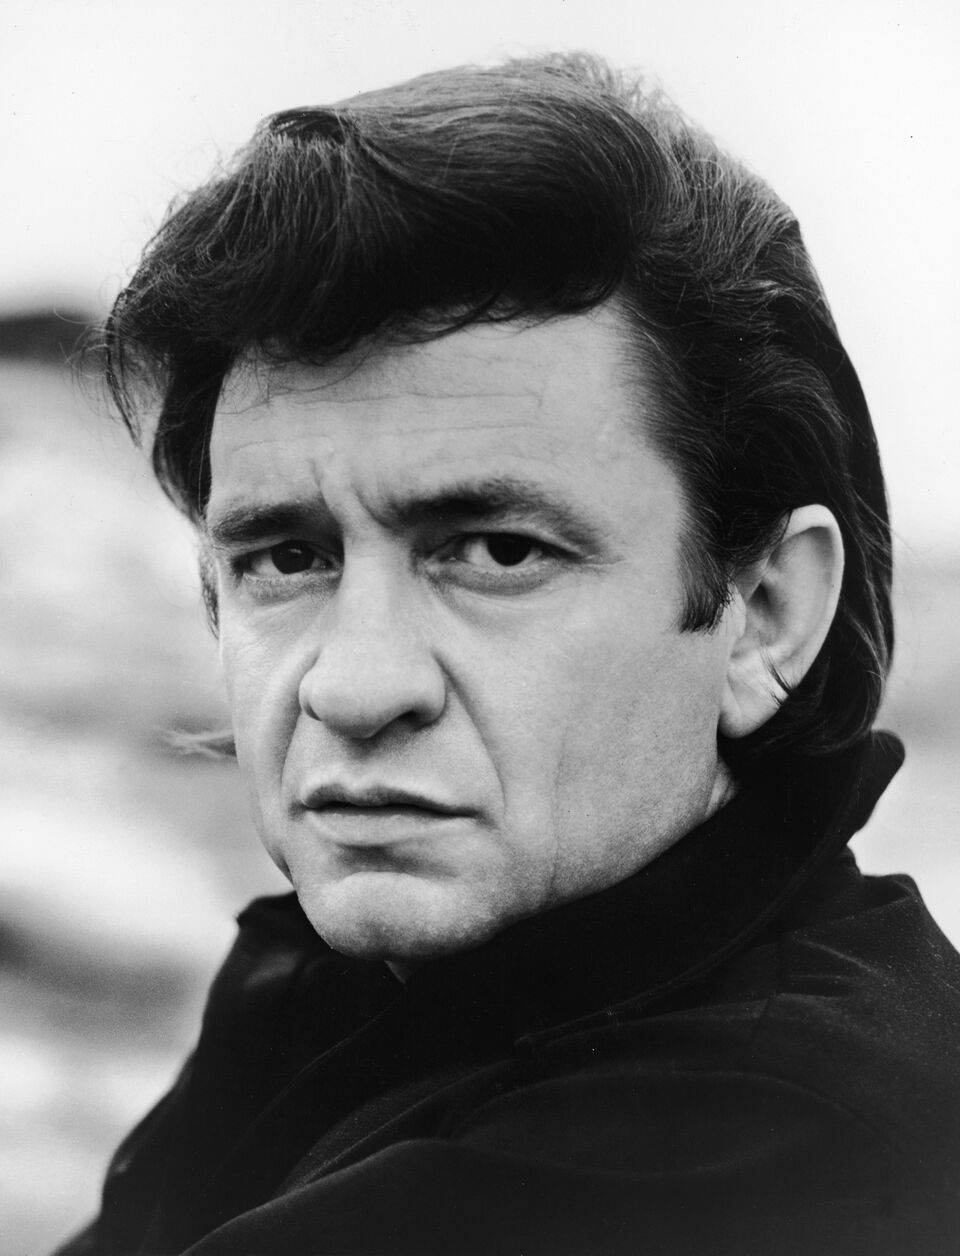 Headshot portrait of Johnny Cash for his television show. | Source: Getty Images